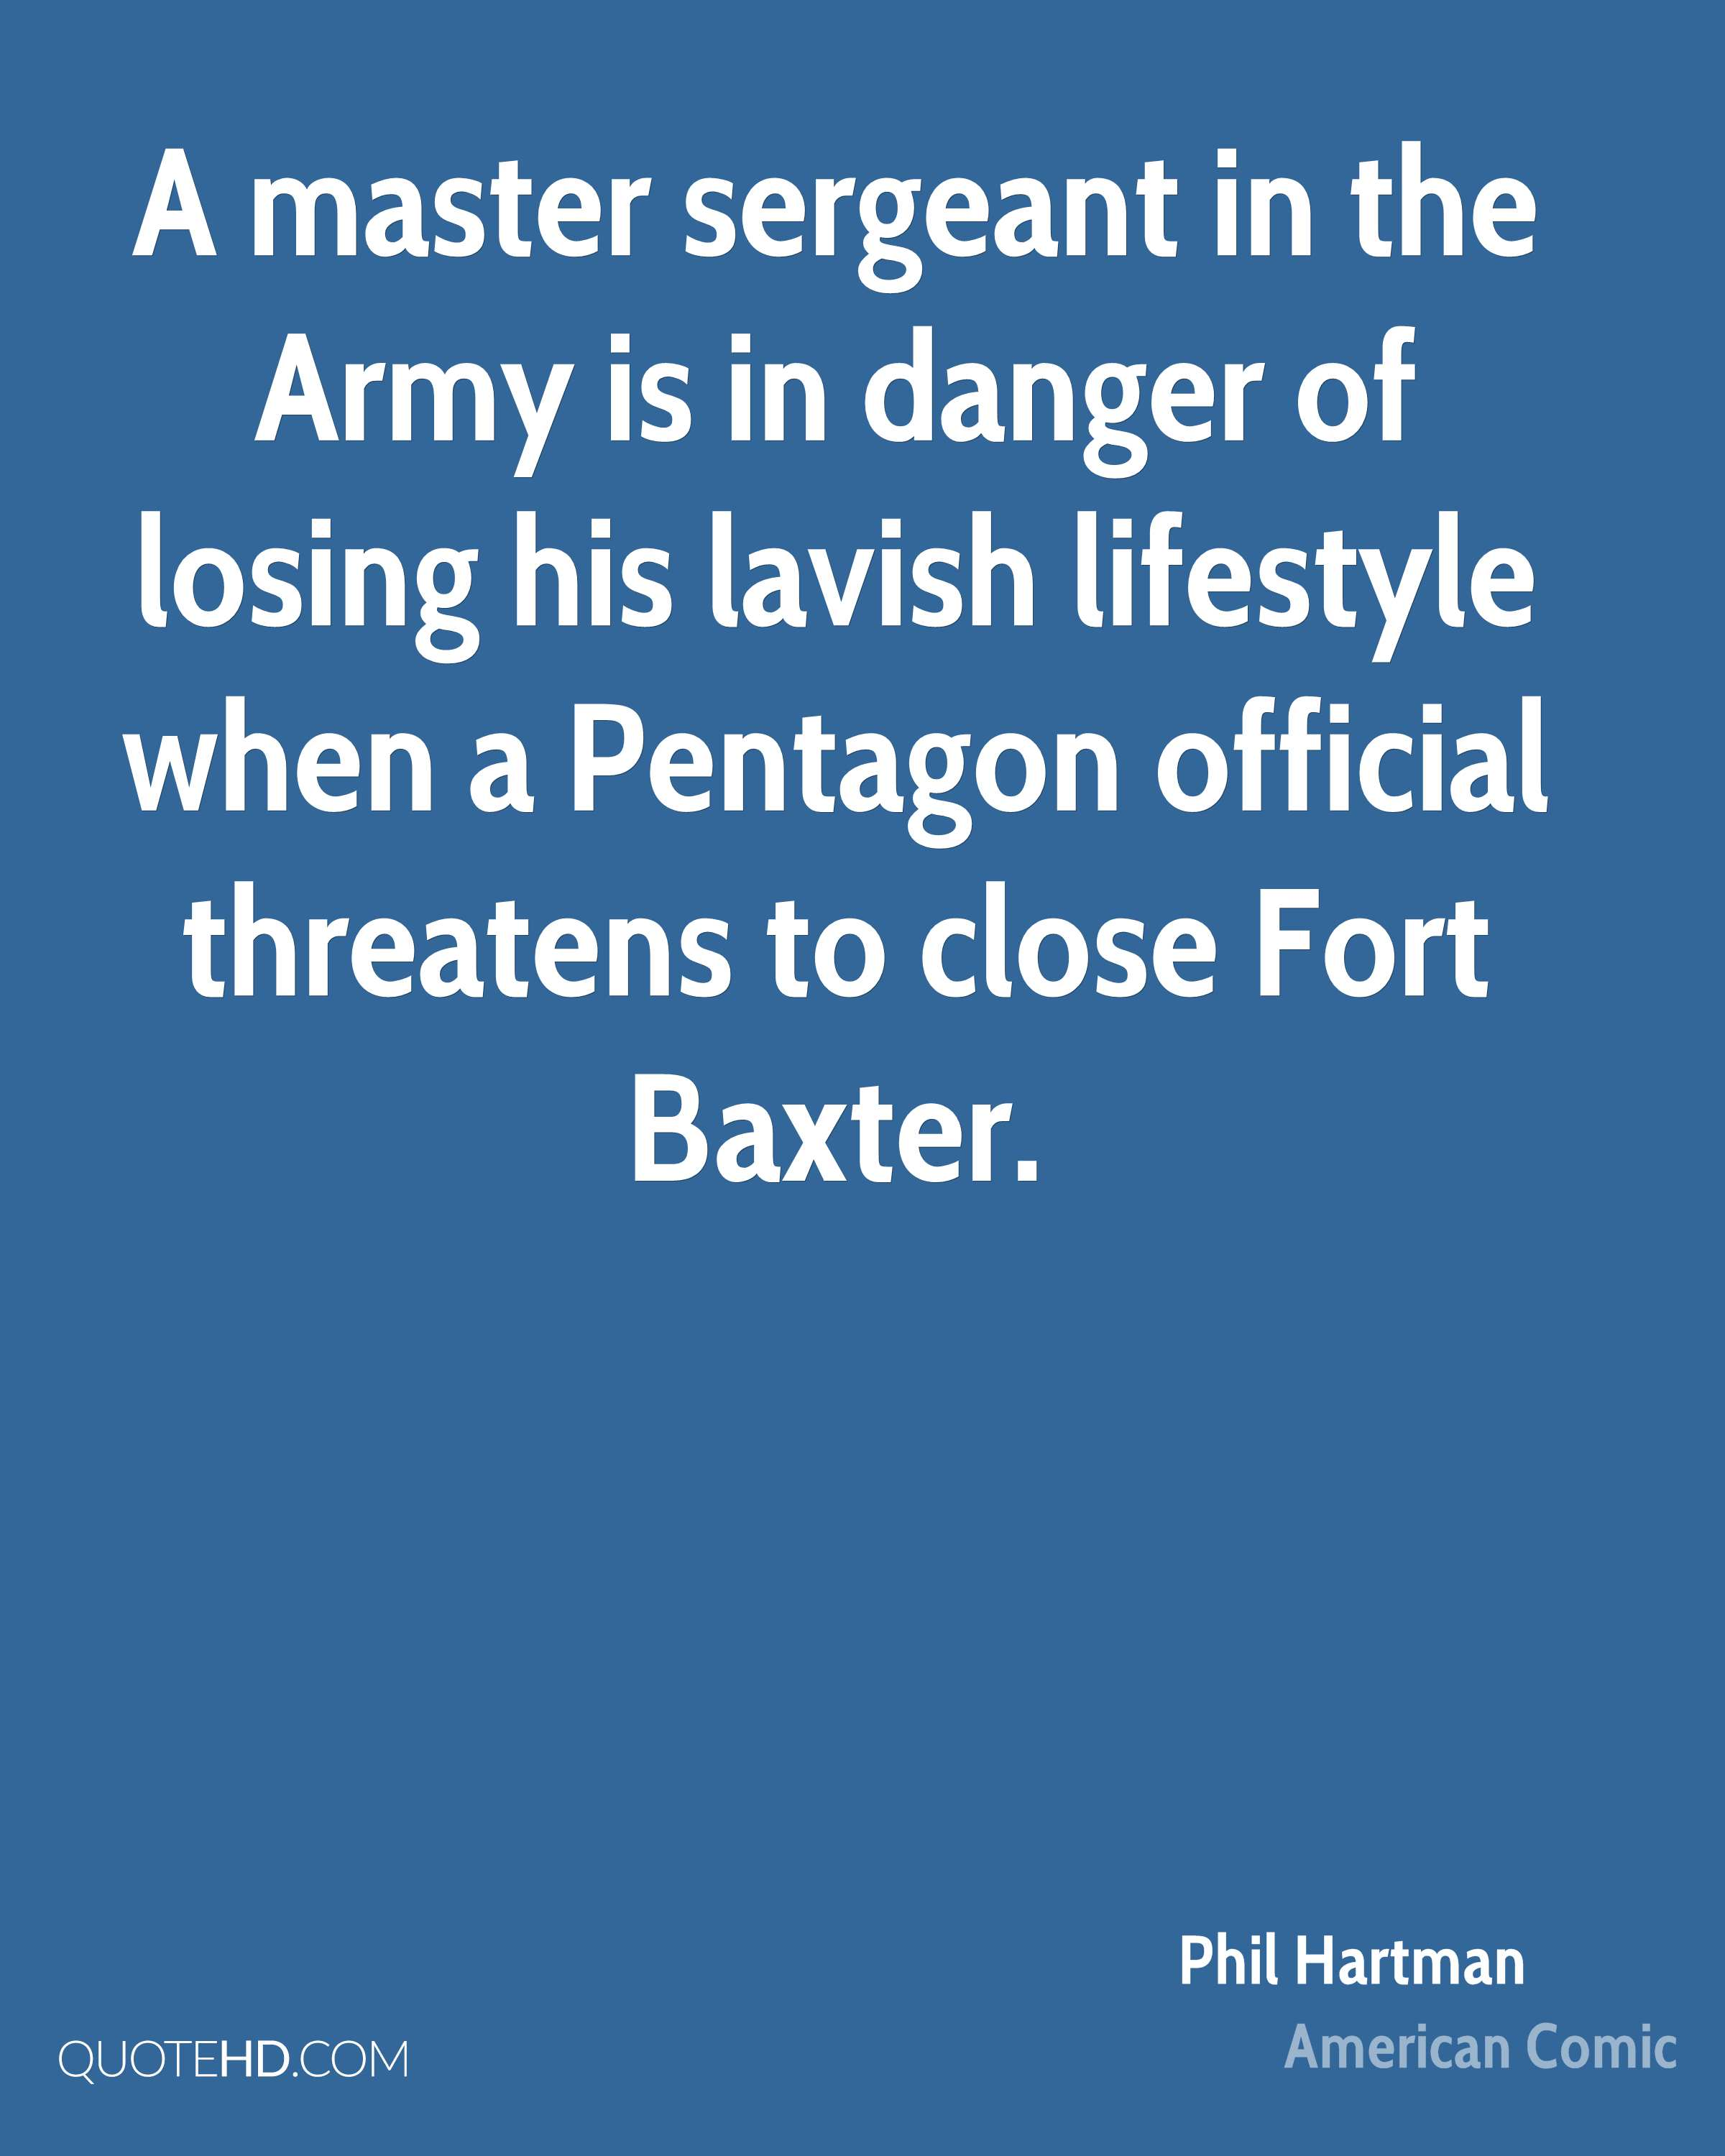 A master sergeant in the Army is in danger of losing his lavish lifestyle when a Pentagon official threatens to close Fort Baxter.